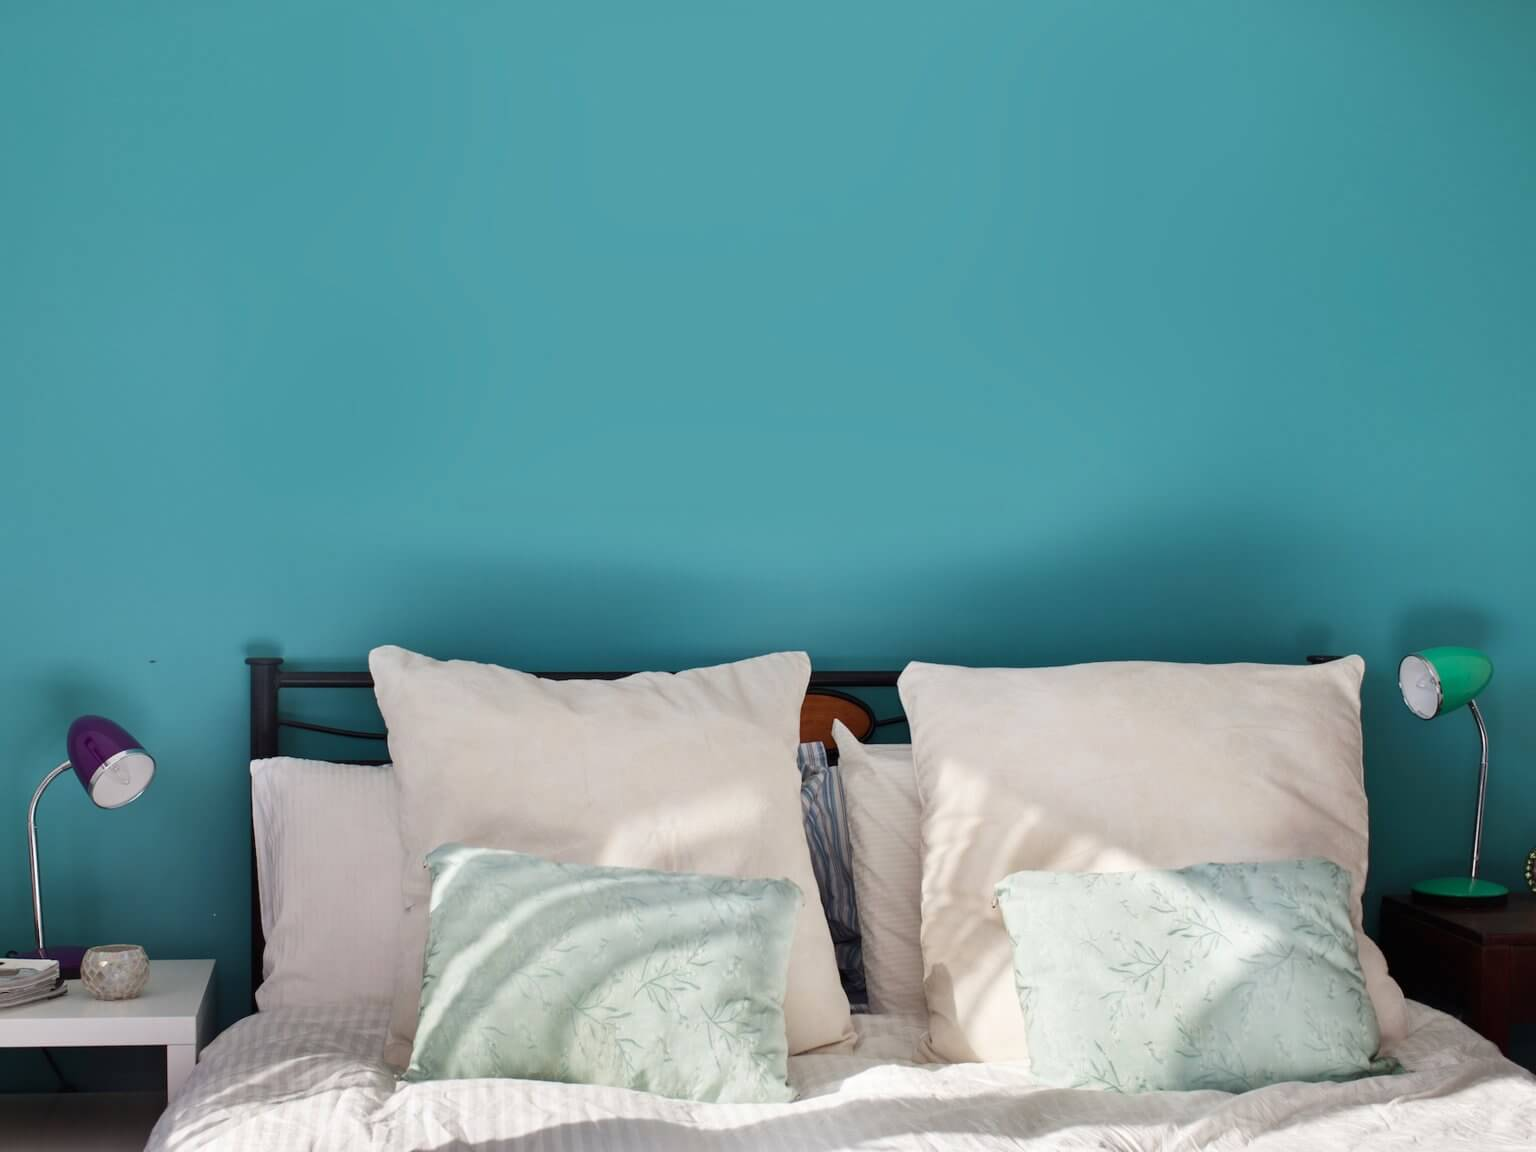 Blue walls match blue bedding